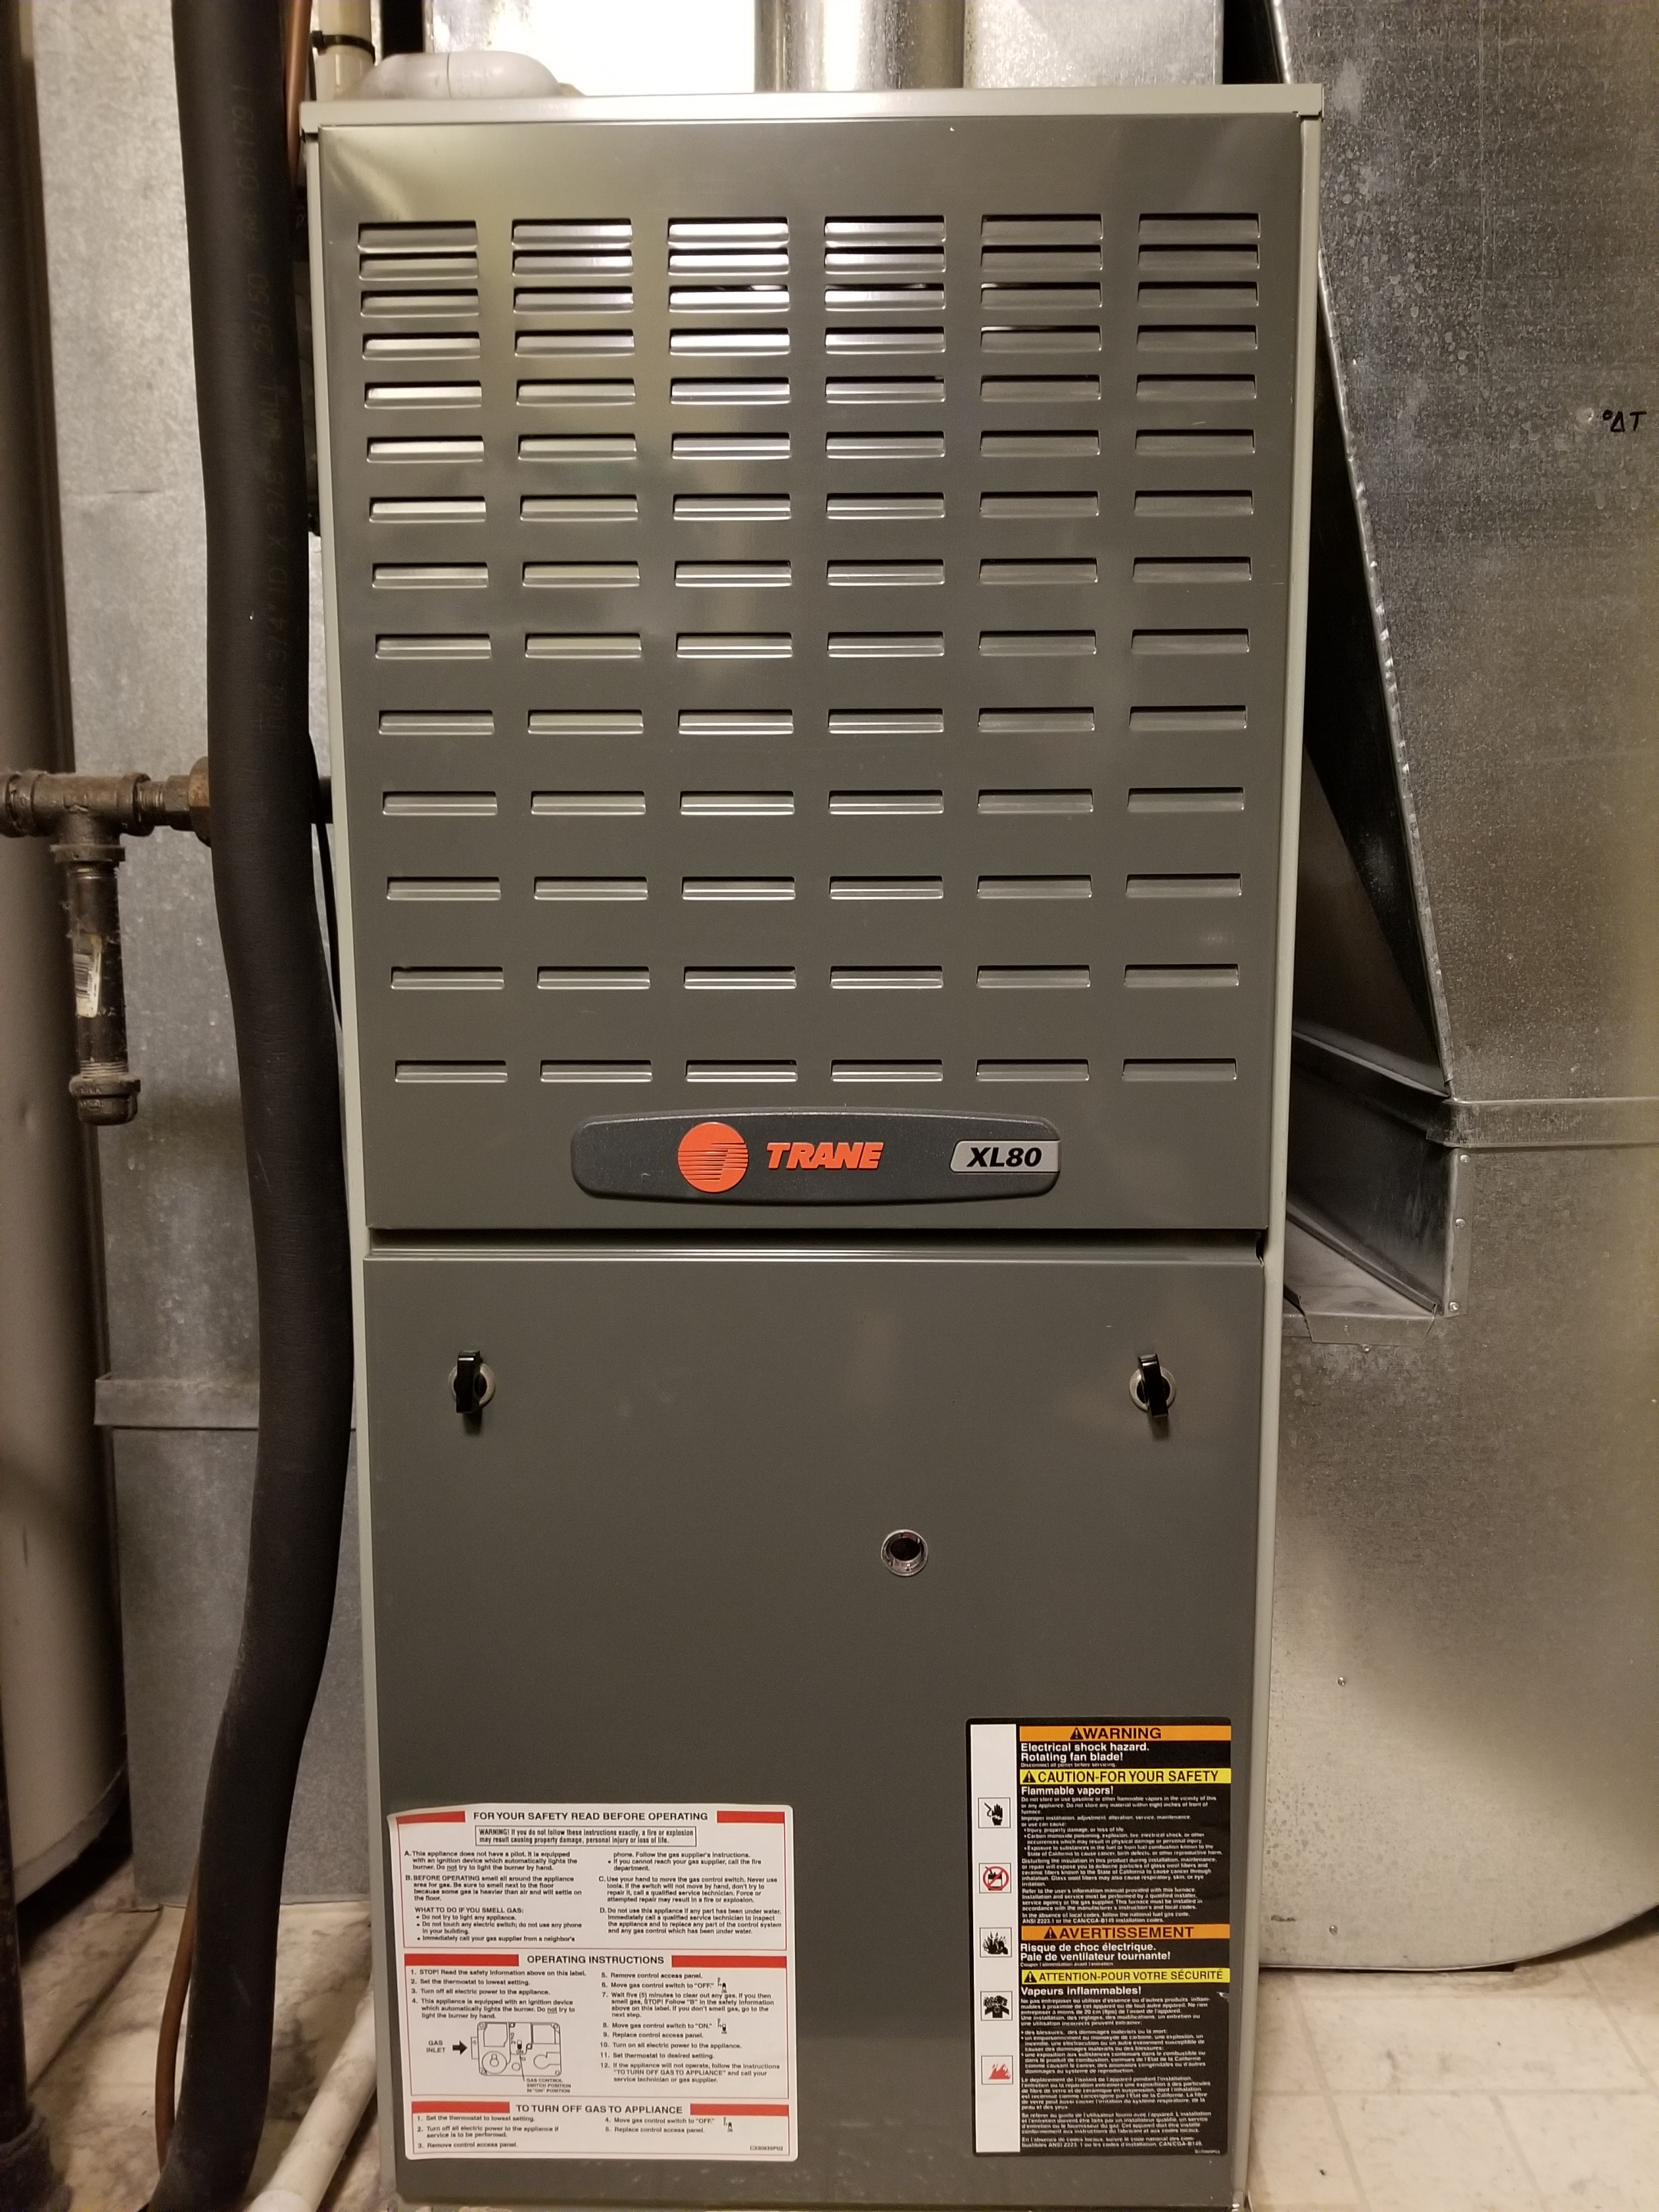 Performed annual maintenance on the Trane furnace and made adjustments to improve the overall efficiency and life expectancy of the equipment